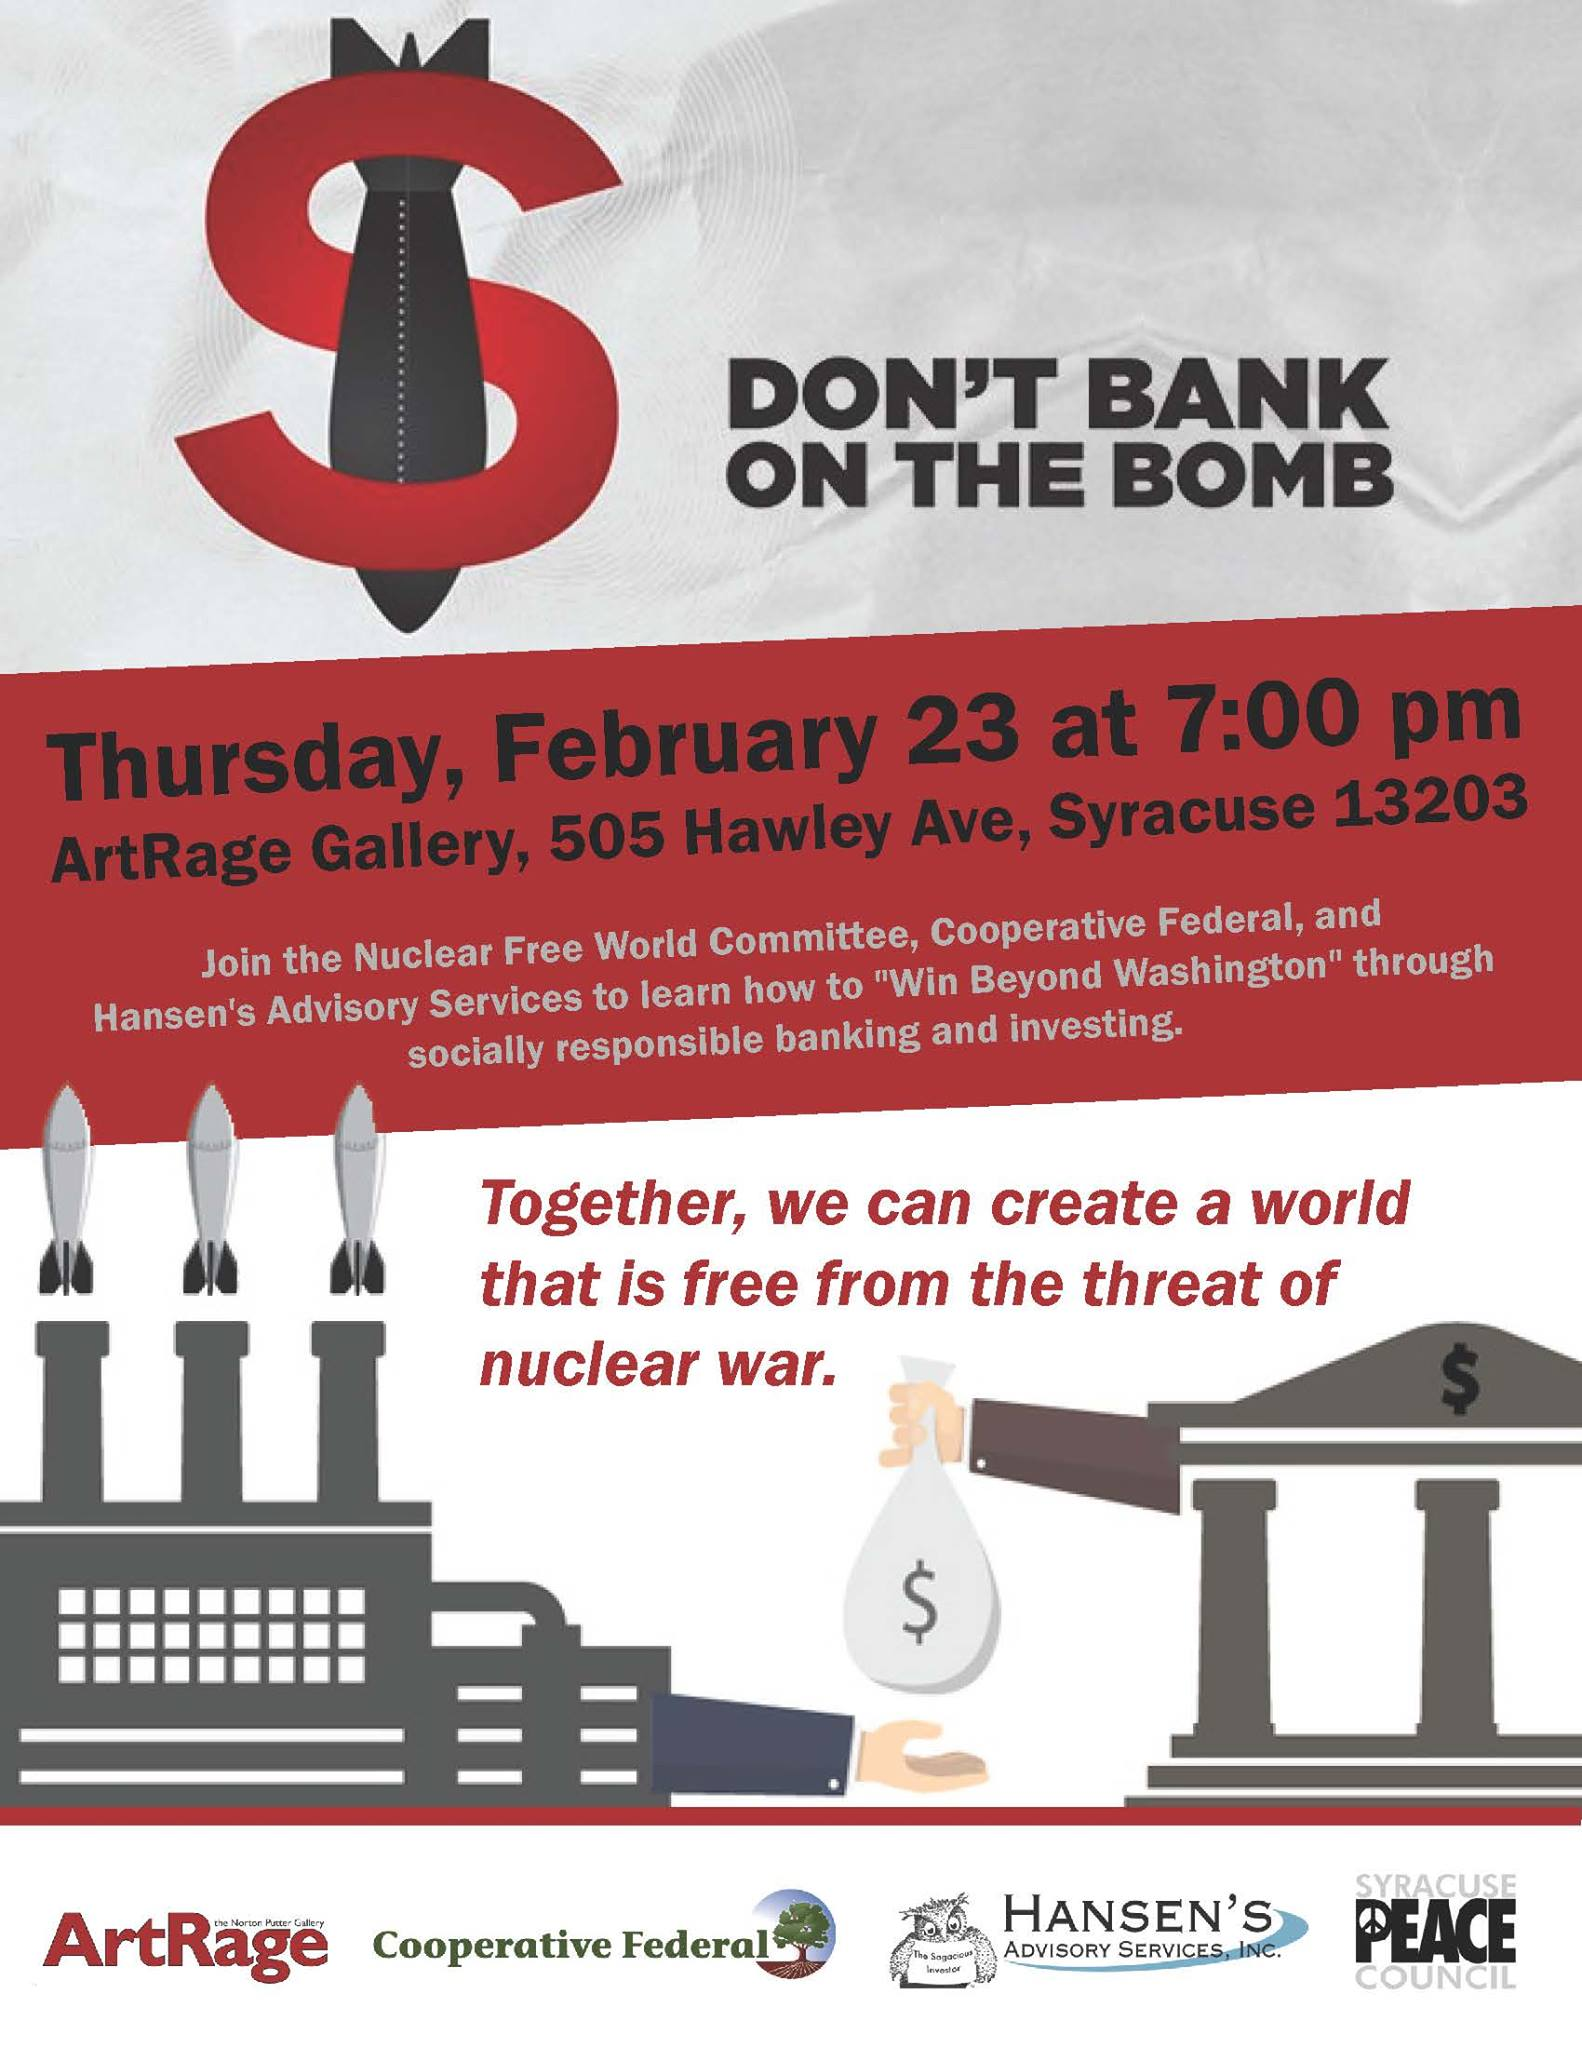 Don't Bank on the Bomb event flyer